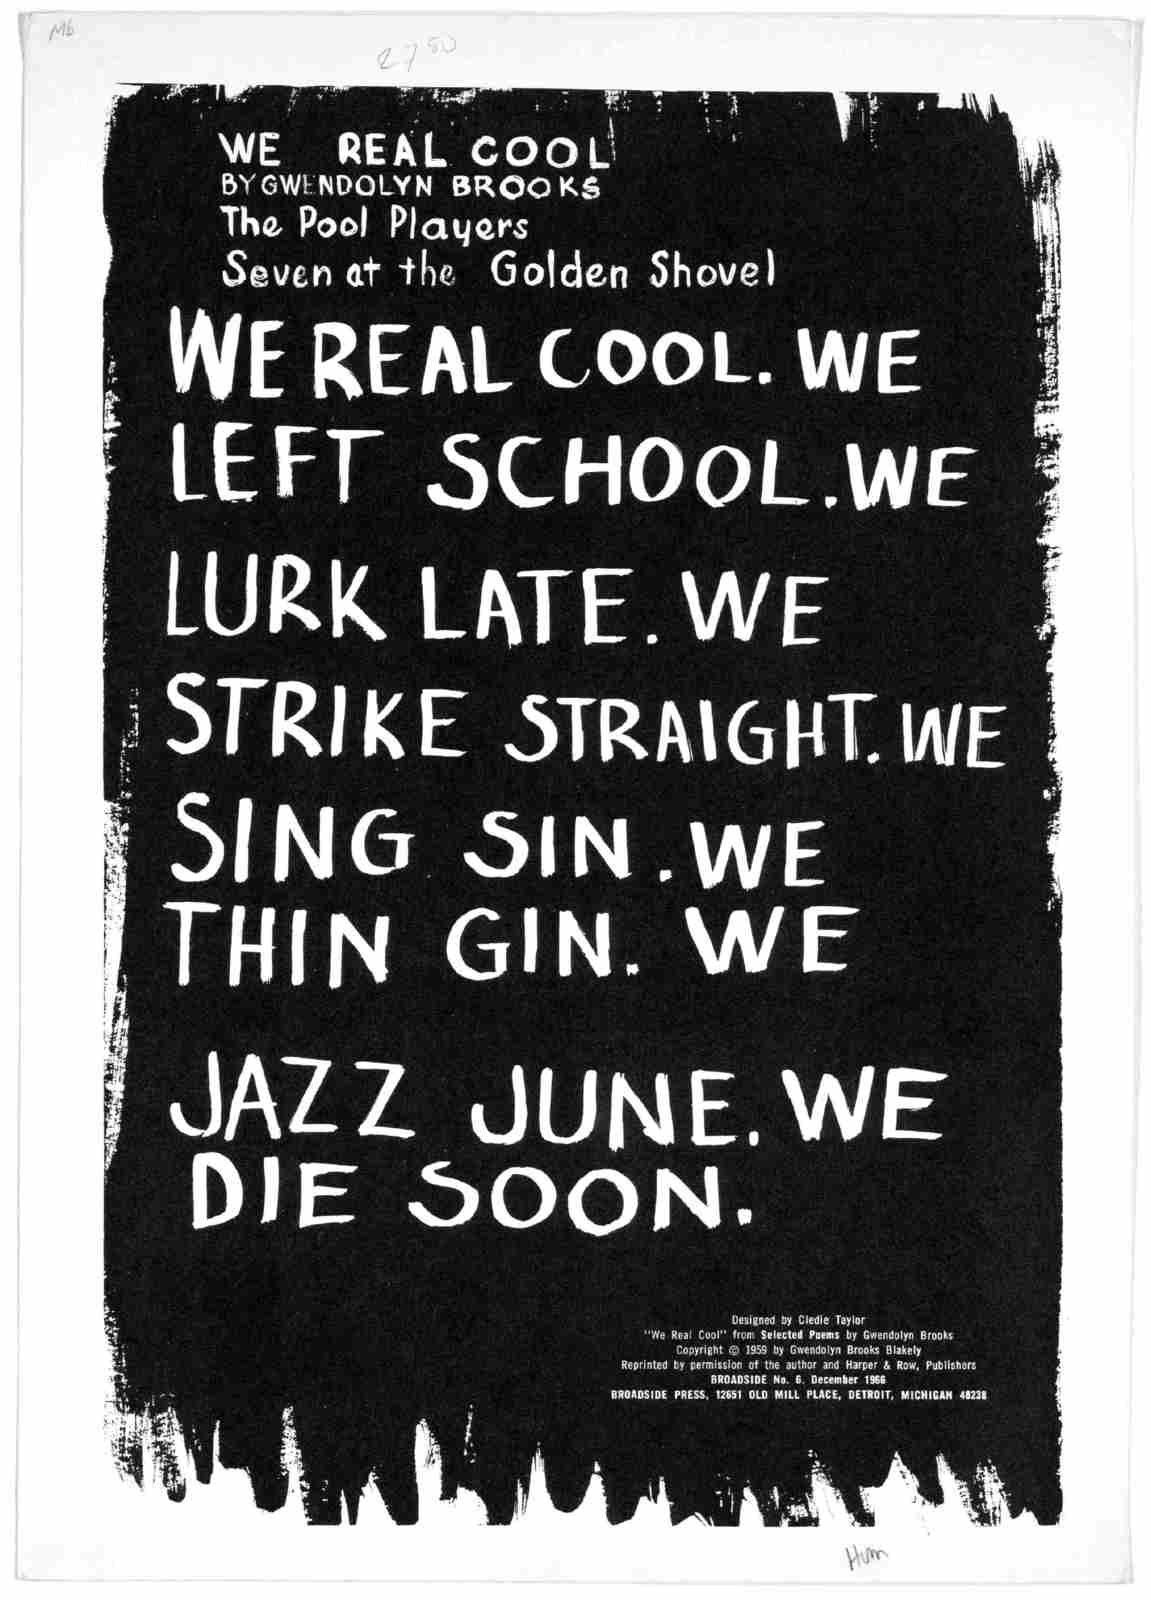 We real cool / by Gwendolyn Brooks. Detroit, Michigan : Broadside Press, 1966.